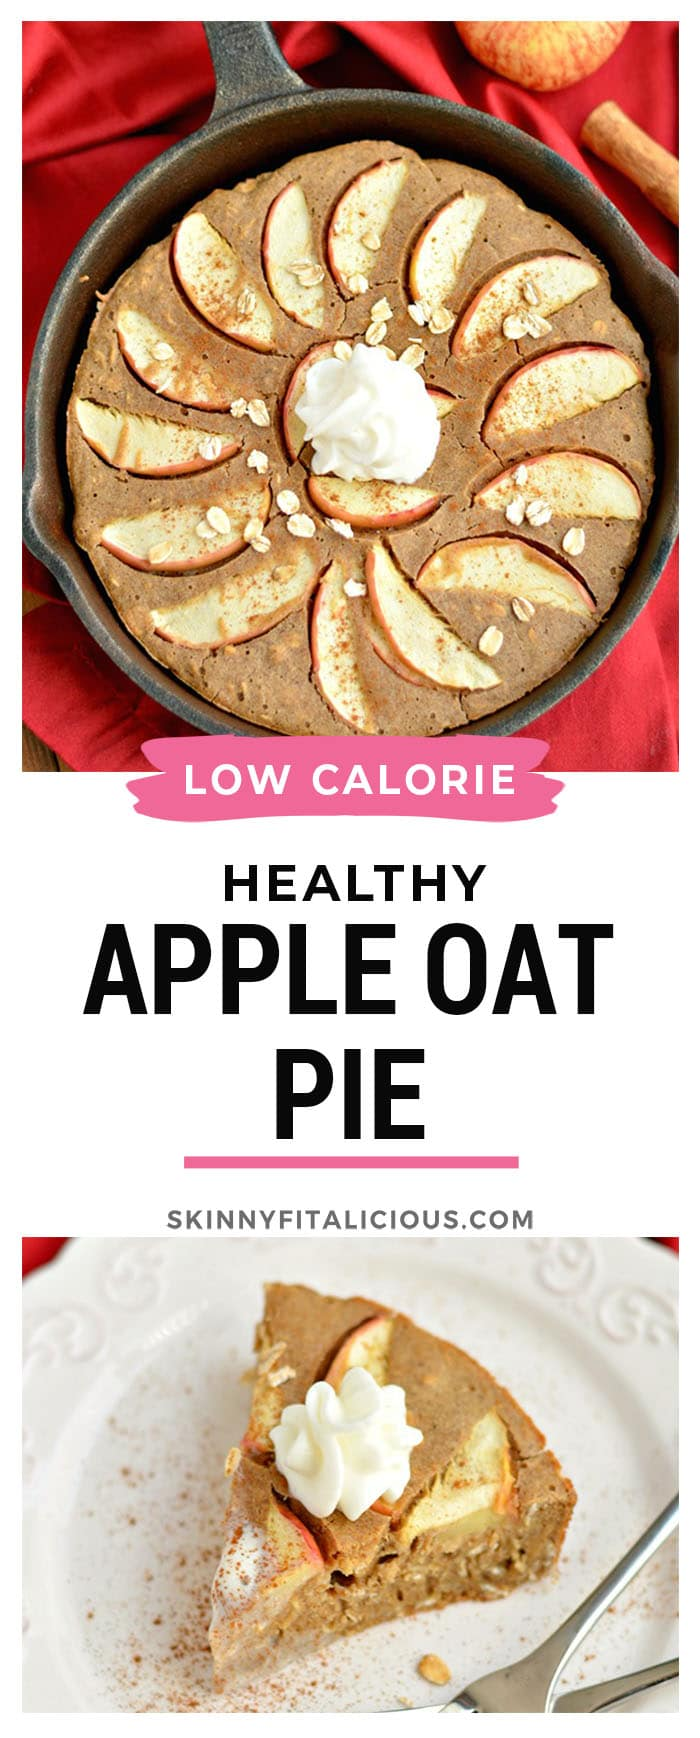 This Healthy Cinnamon Oat Apple Pie is a fast and easy puffedskillet pie made with freshly sliced apples and gluten free oats. The perfect no fuss breakfast or dessert! Gluten Free + Dairy Free + Low Calorie